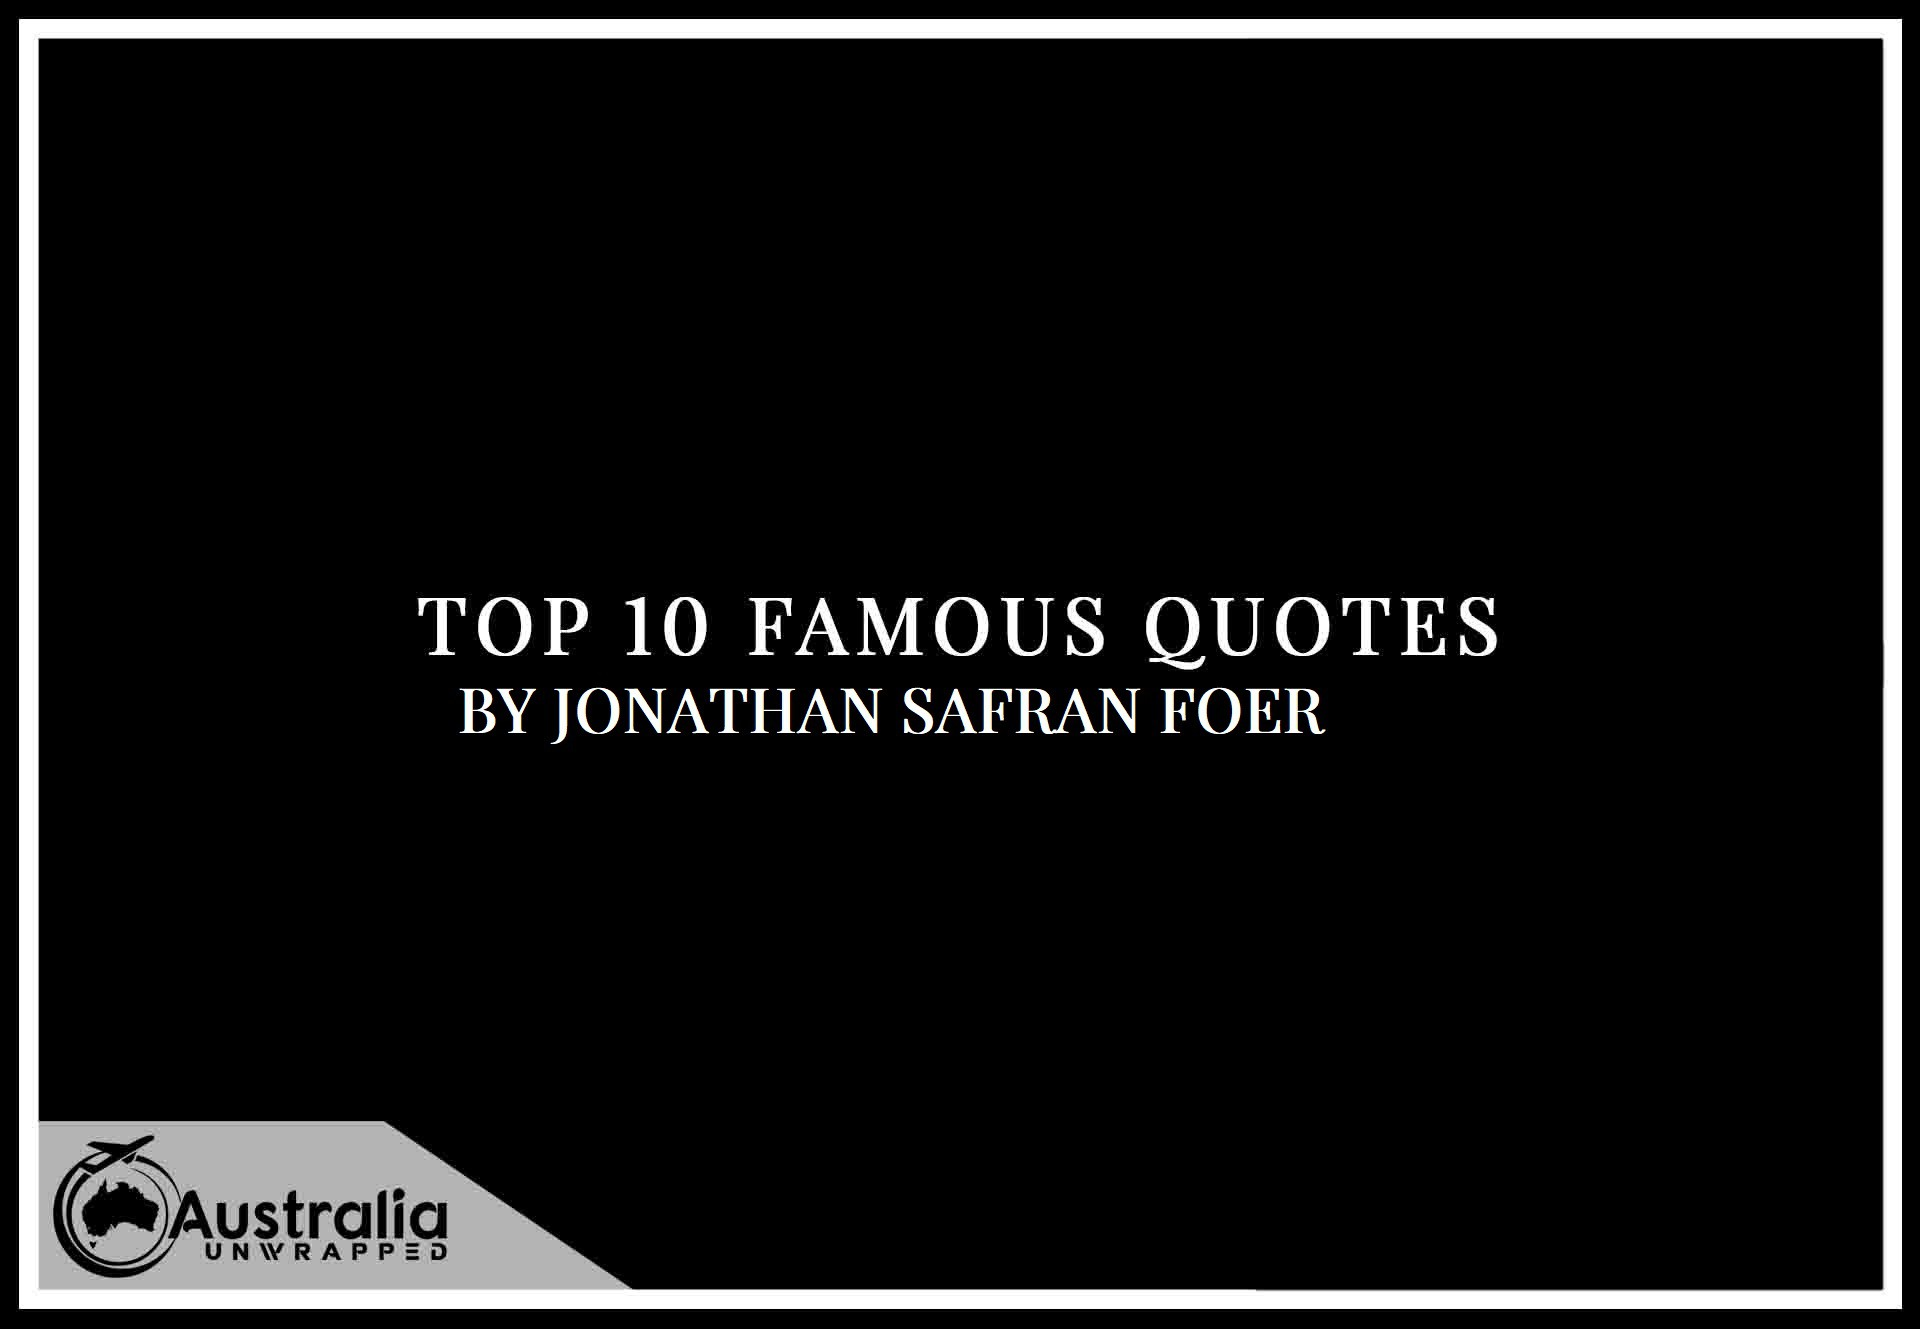 Top 10 Famous Quotes by Author Jonathan Safran Foer